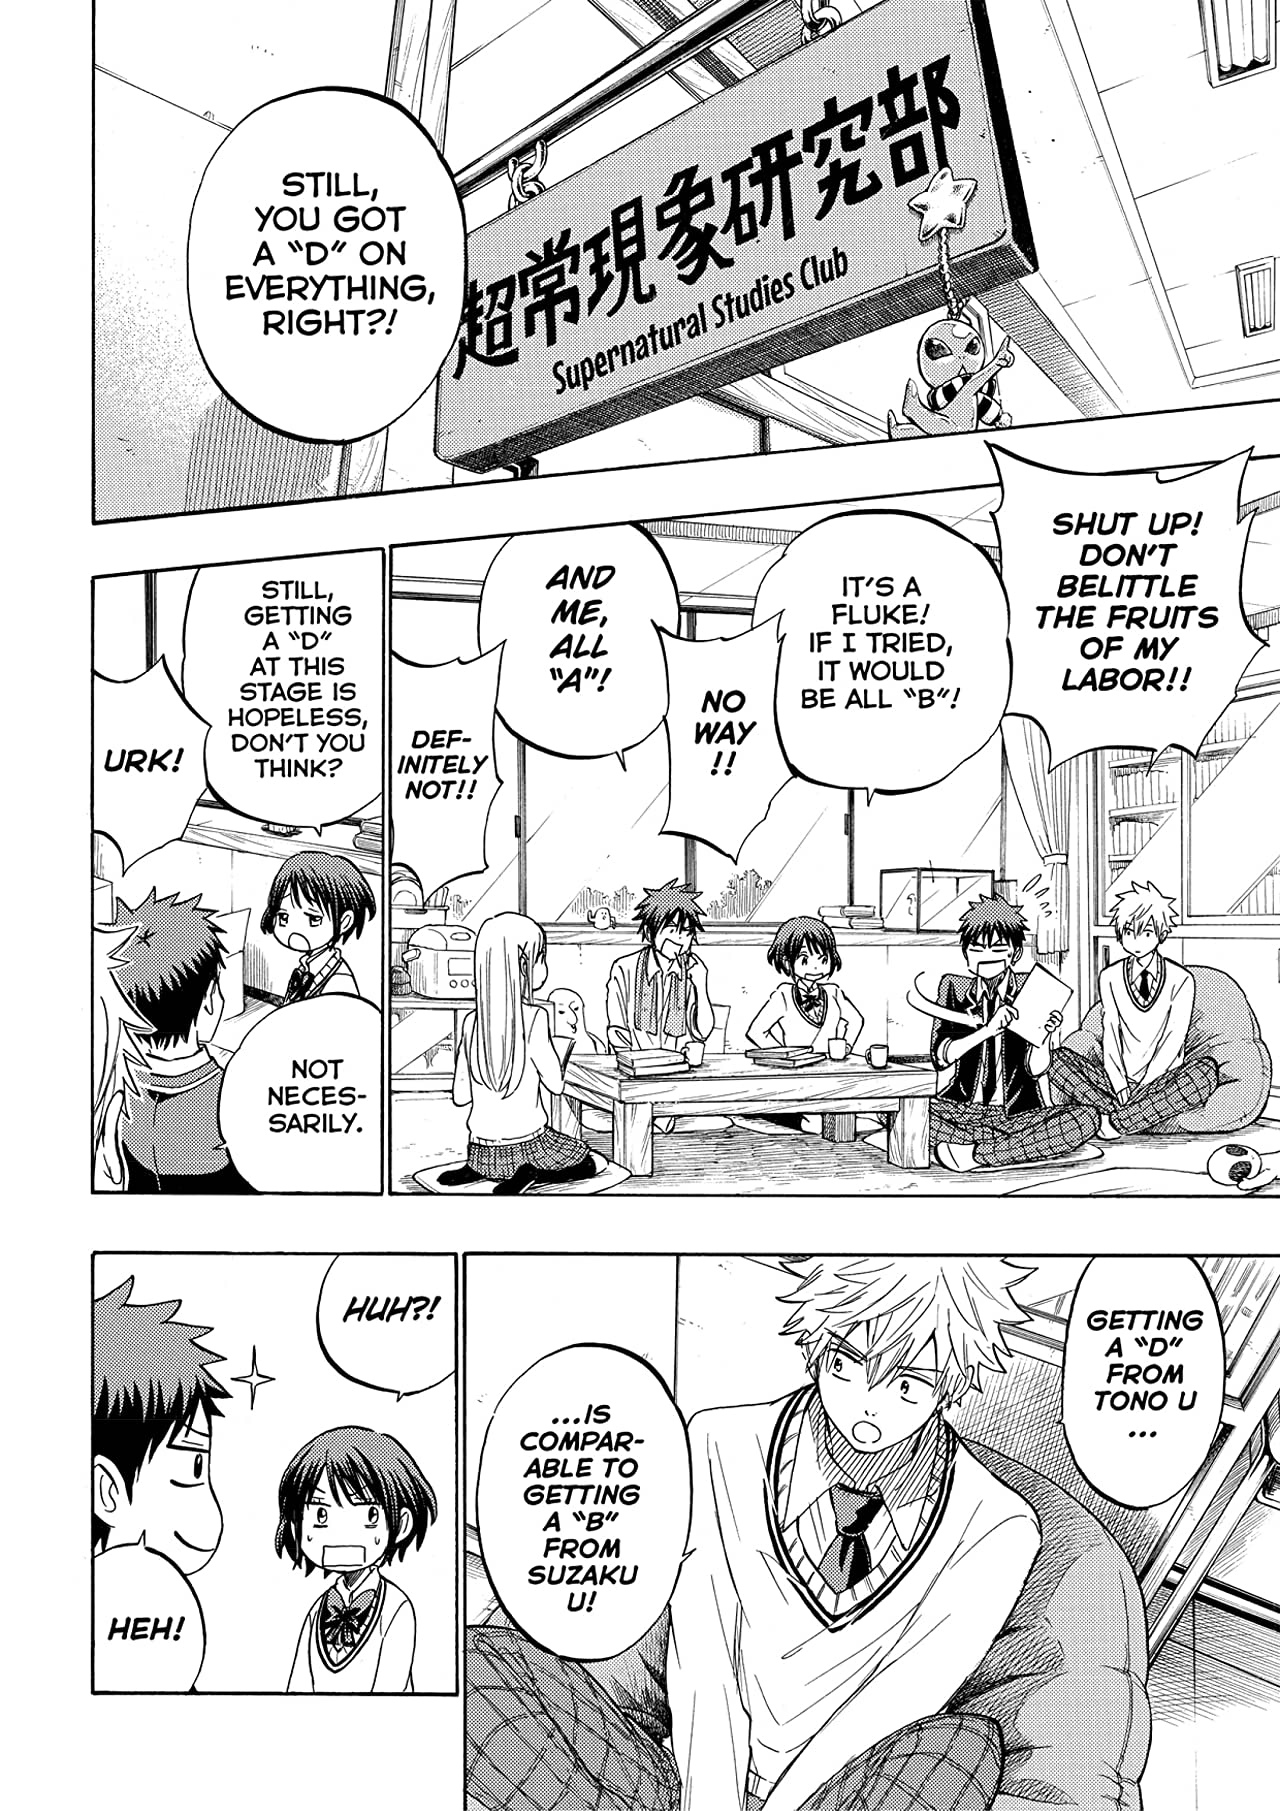 Yamada-kun and the Seven Witches #234